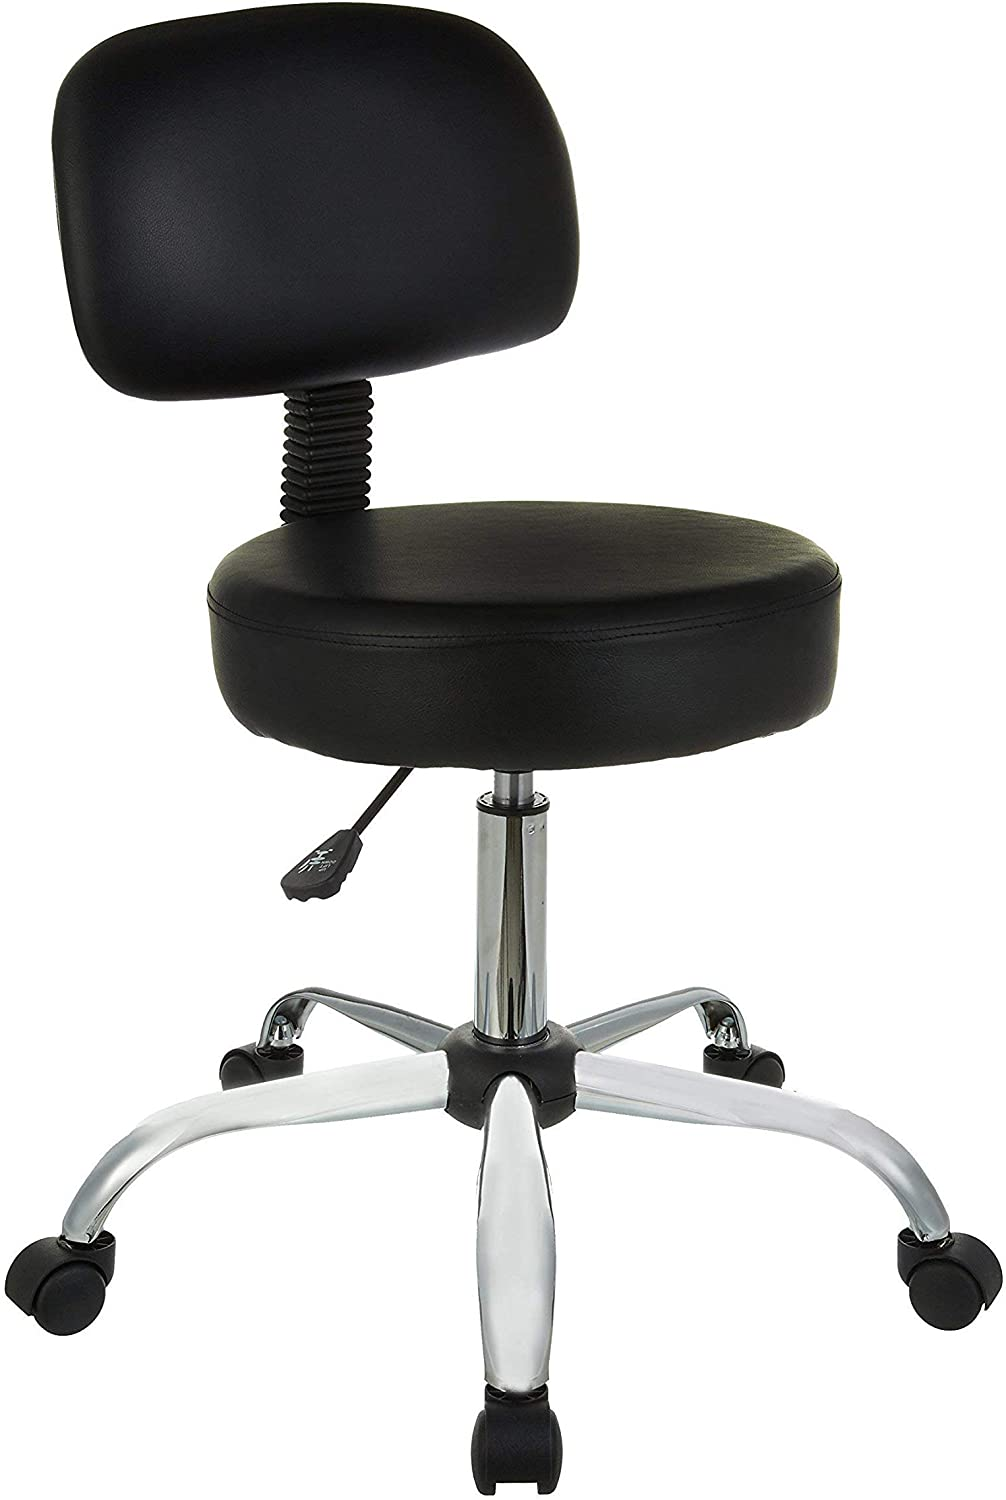 budget swivel typist office chair that is usually available at a low price from shops like Makro